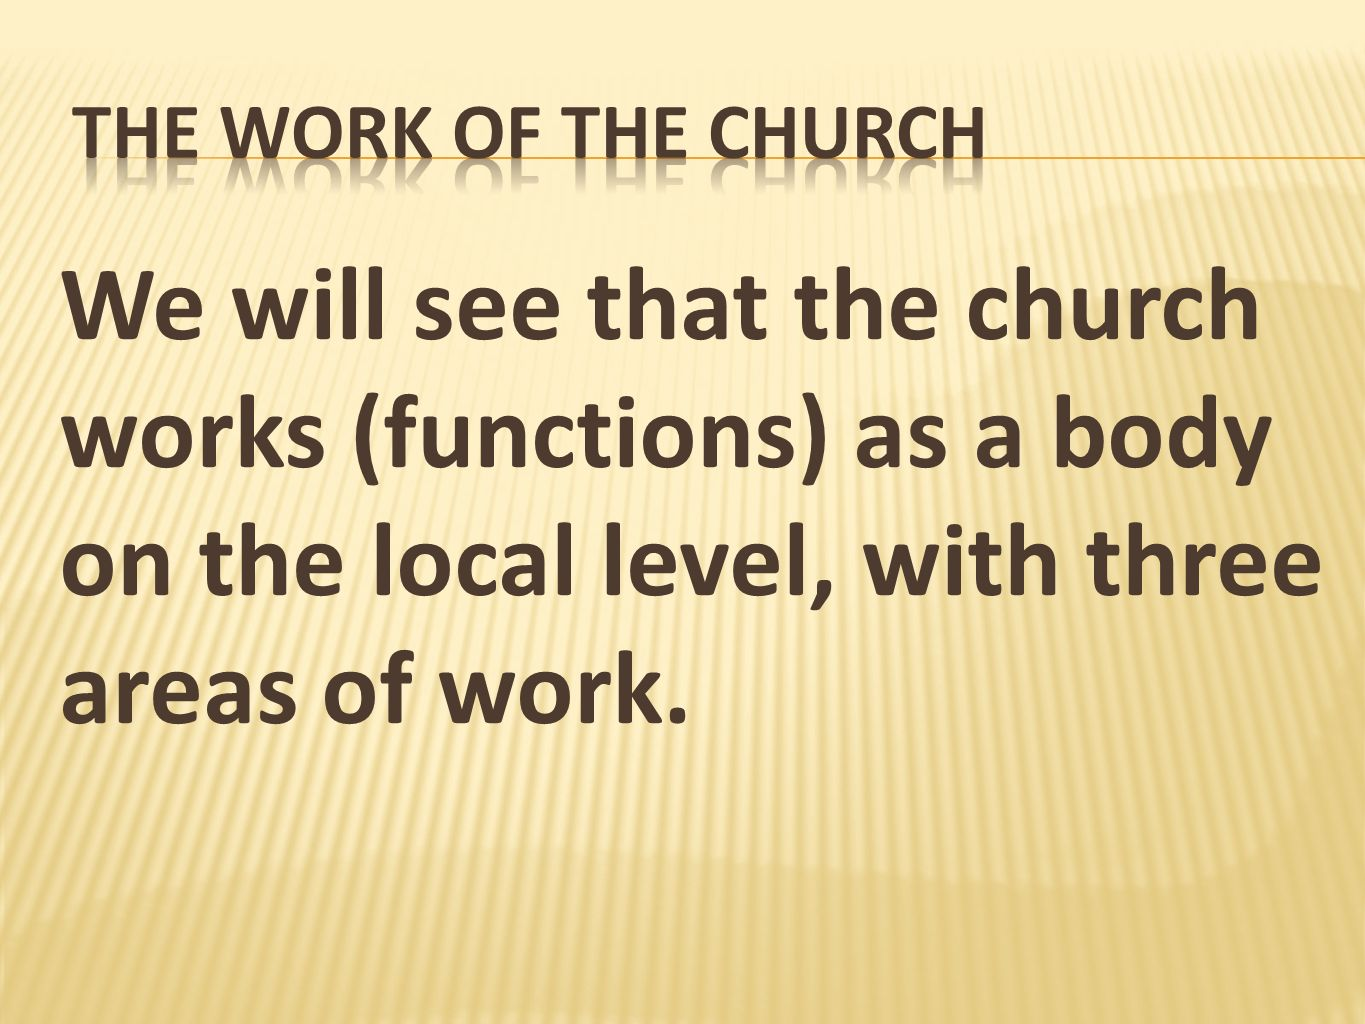 Ephesians 4:11-12 – Christ gave gifts to His Church which included elders for the purpose of edifying the body.